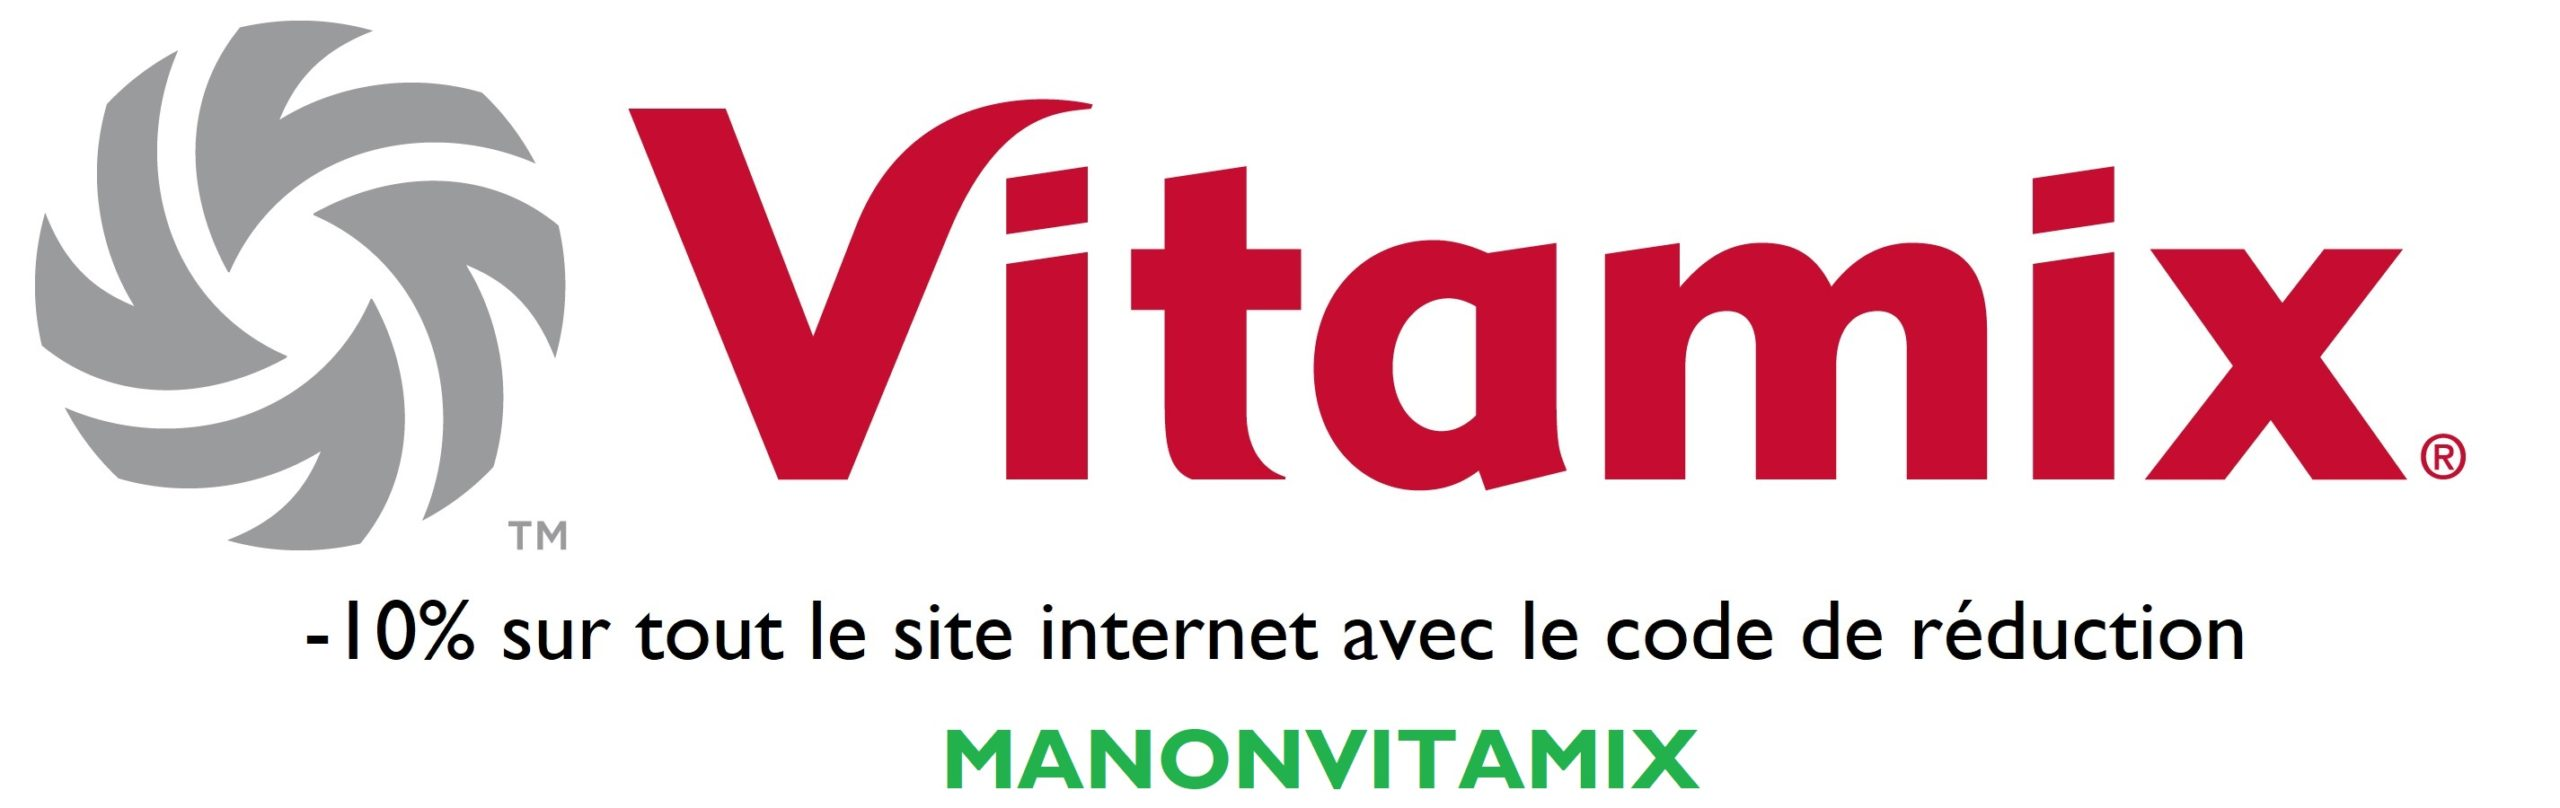 code de réduction VITAMIX